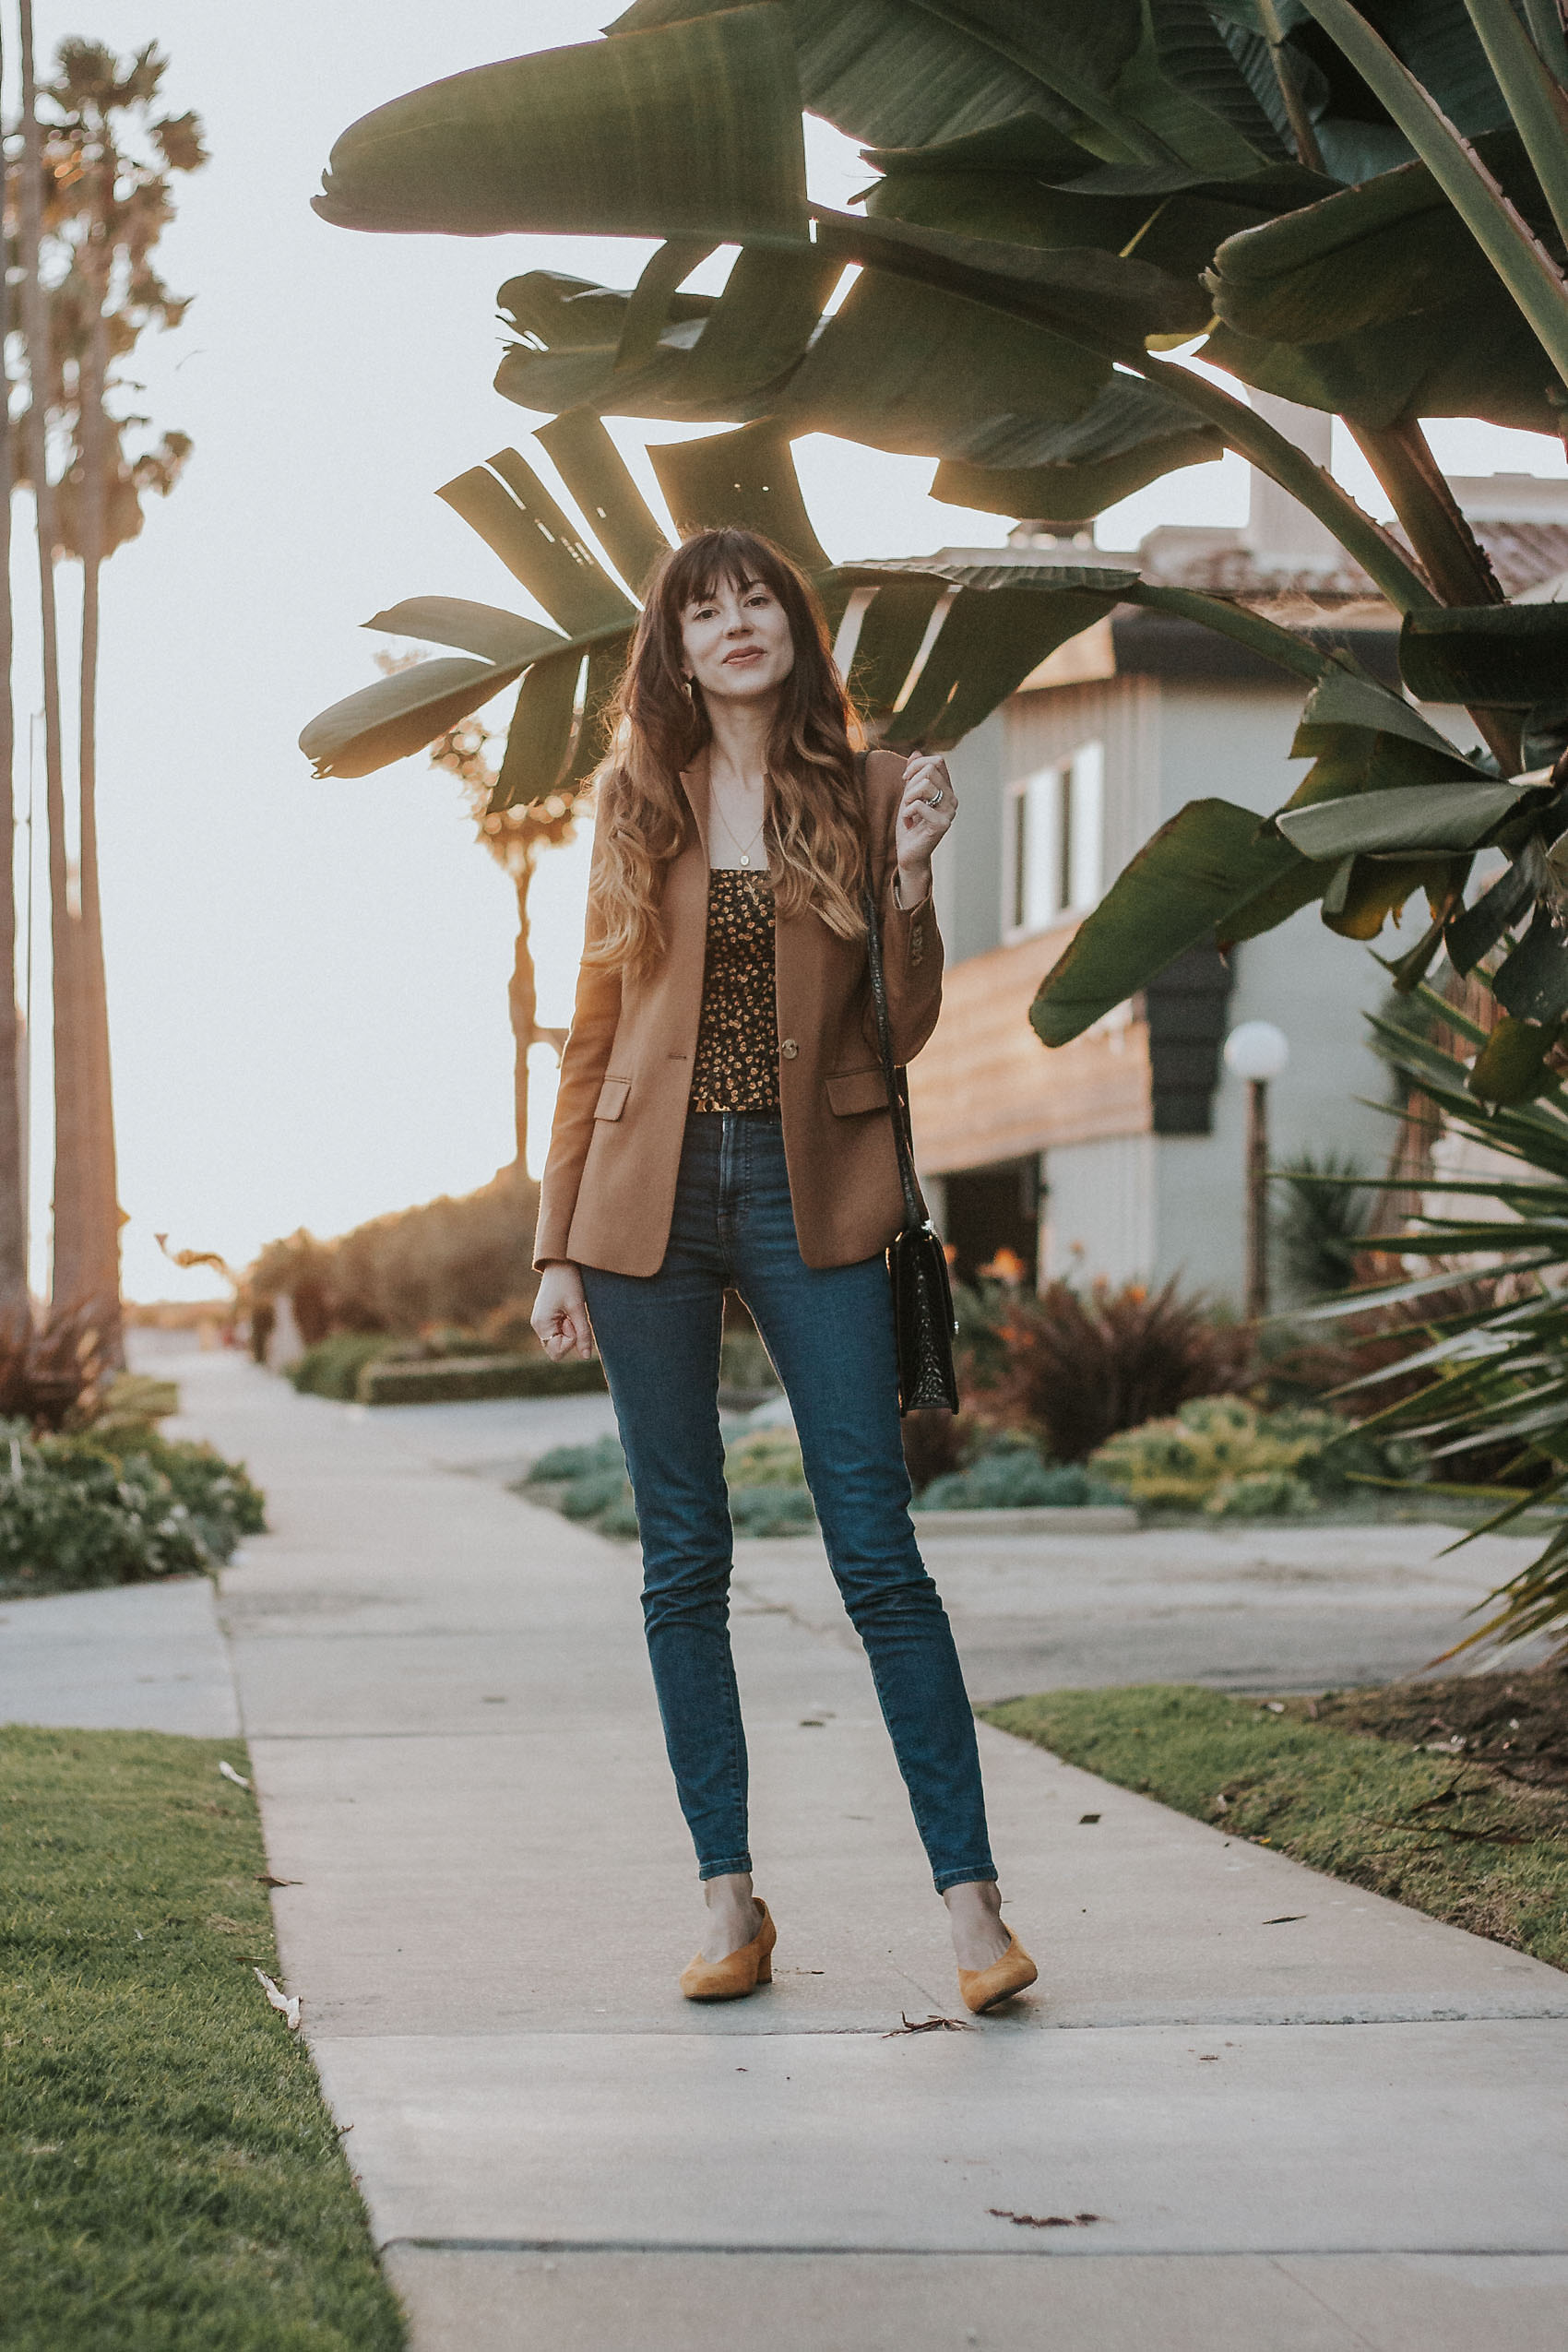 Los Angeles Ethical Fashion Blogger wearing Reformation and Everlane